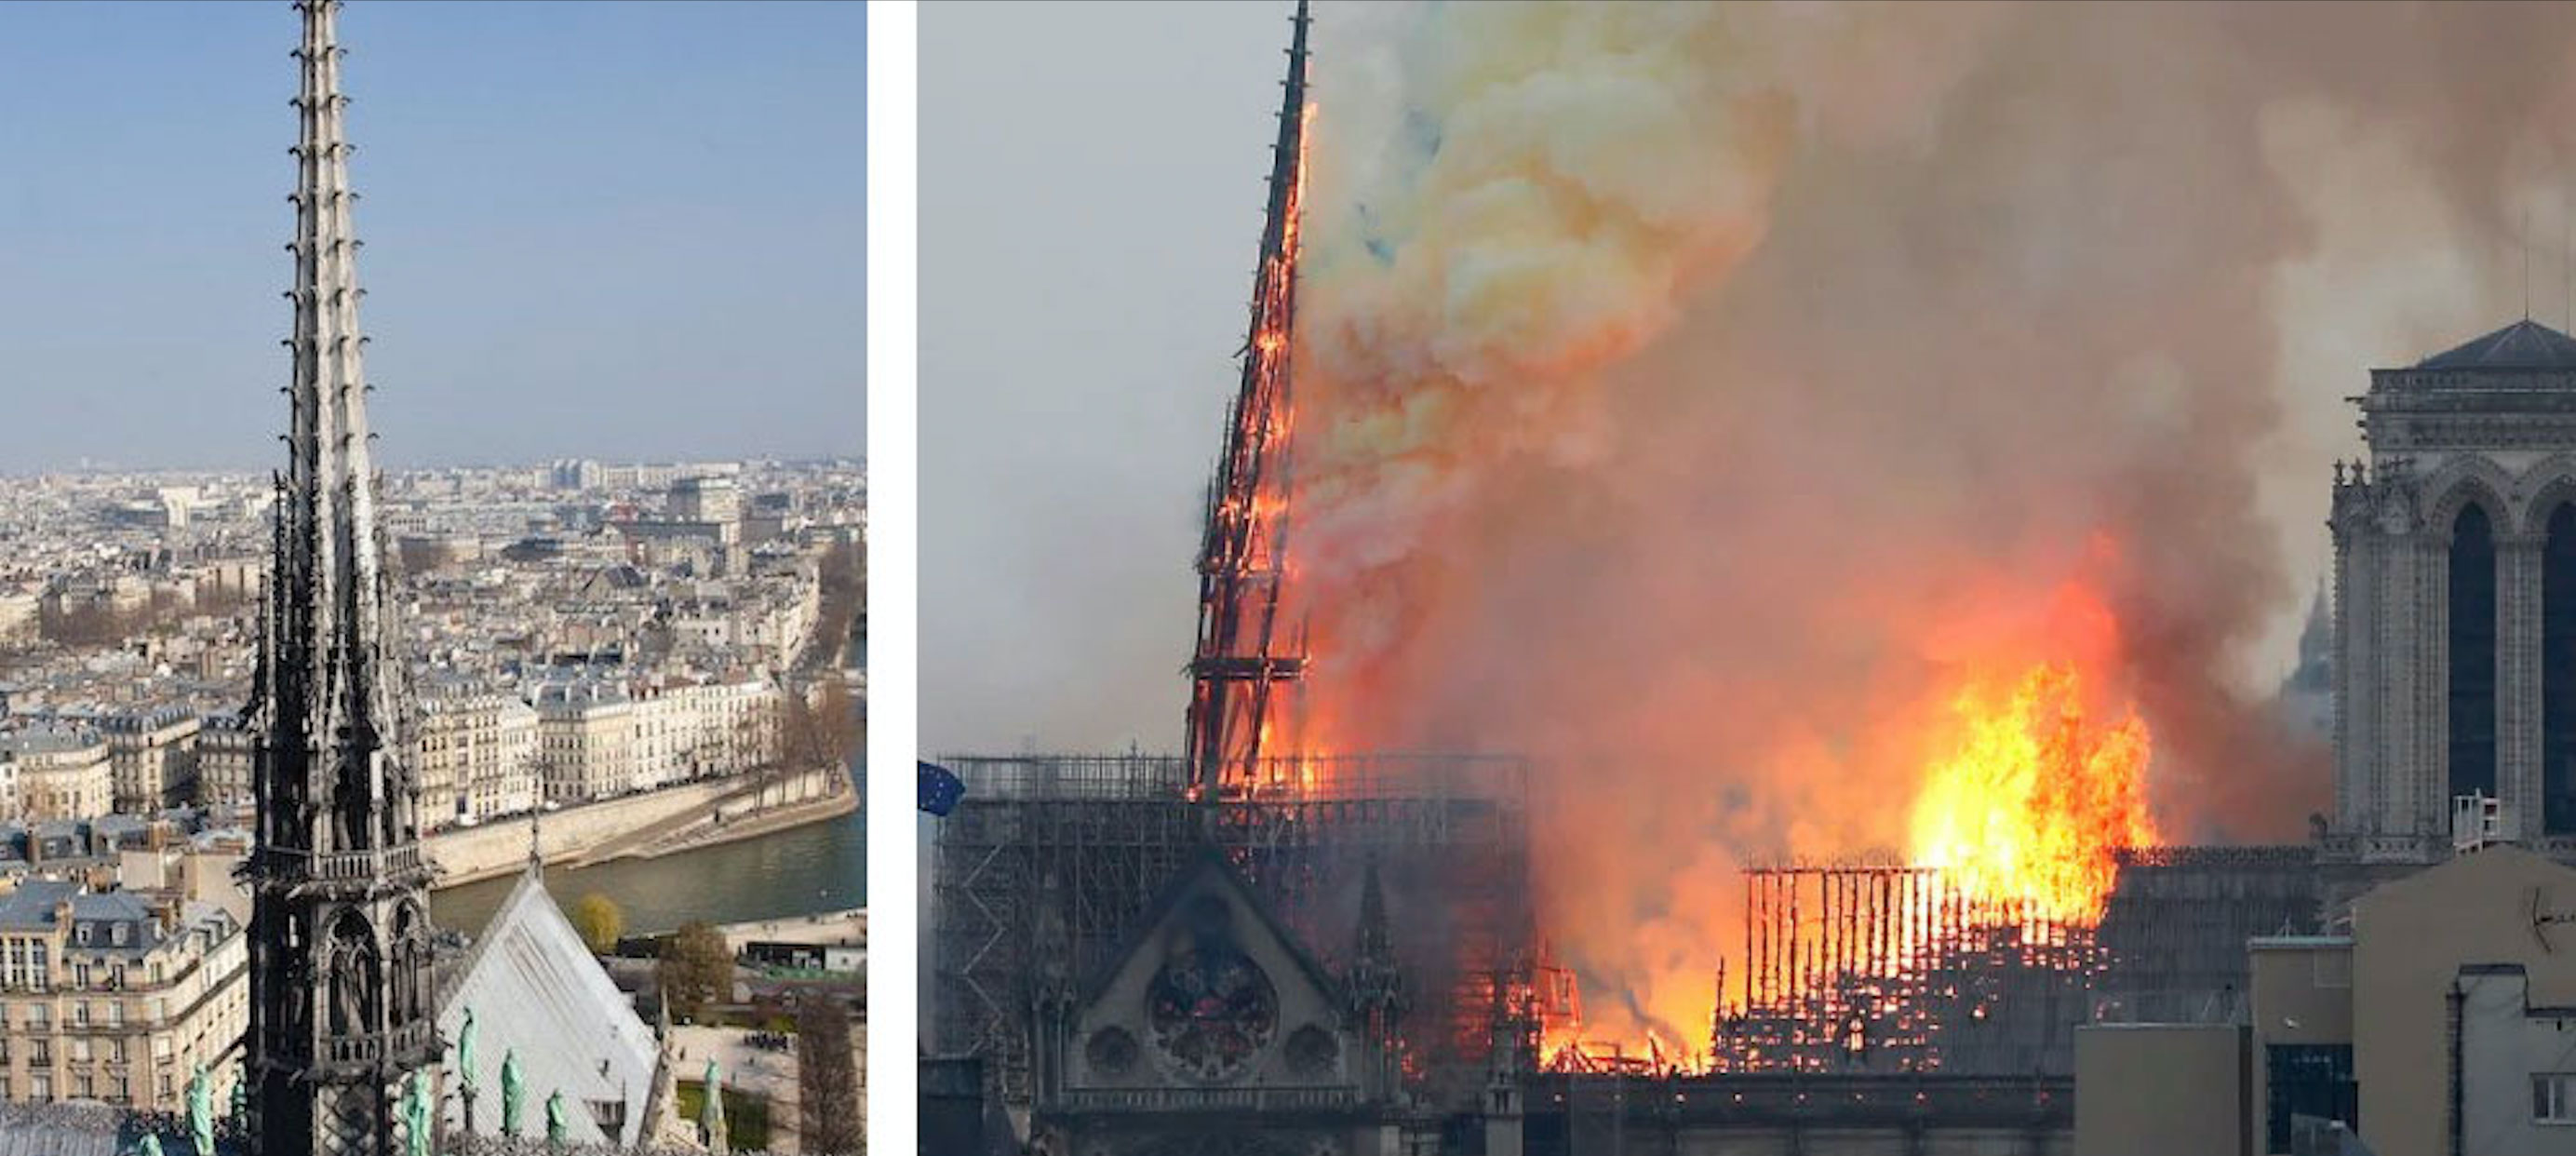 The 93-metre spire was completely destroyed in the blaze.